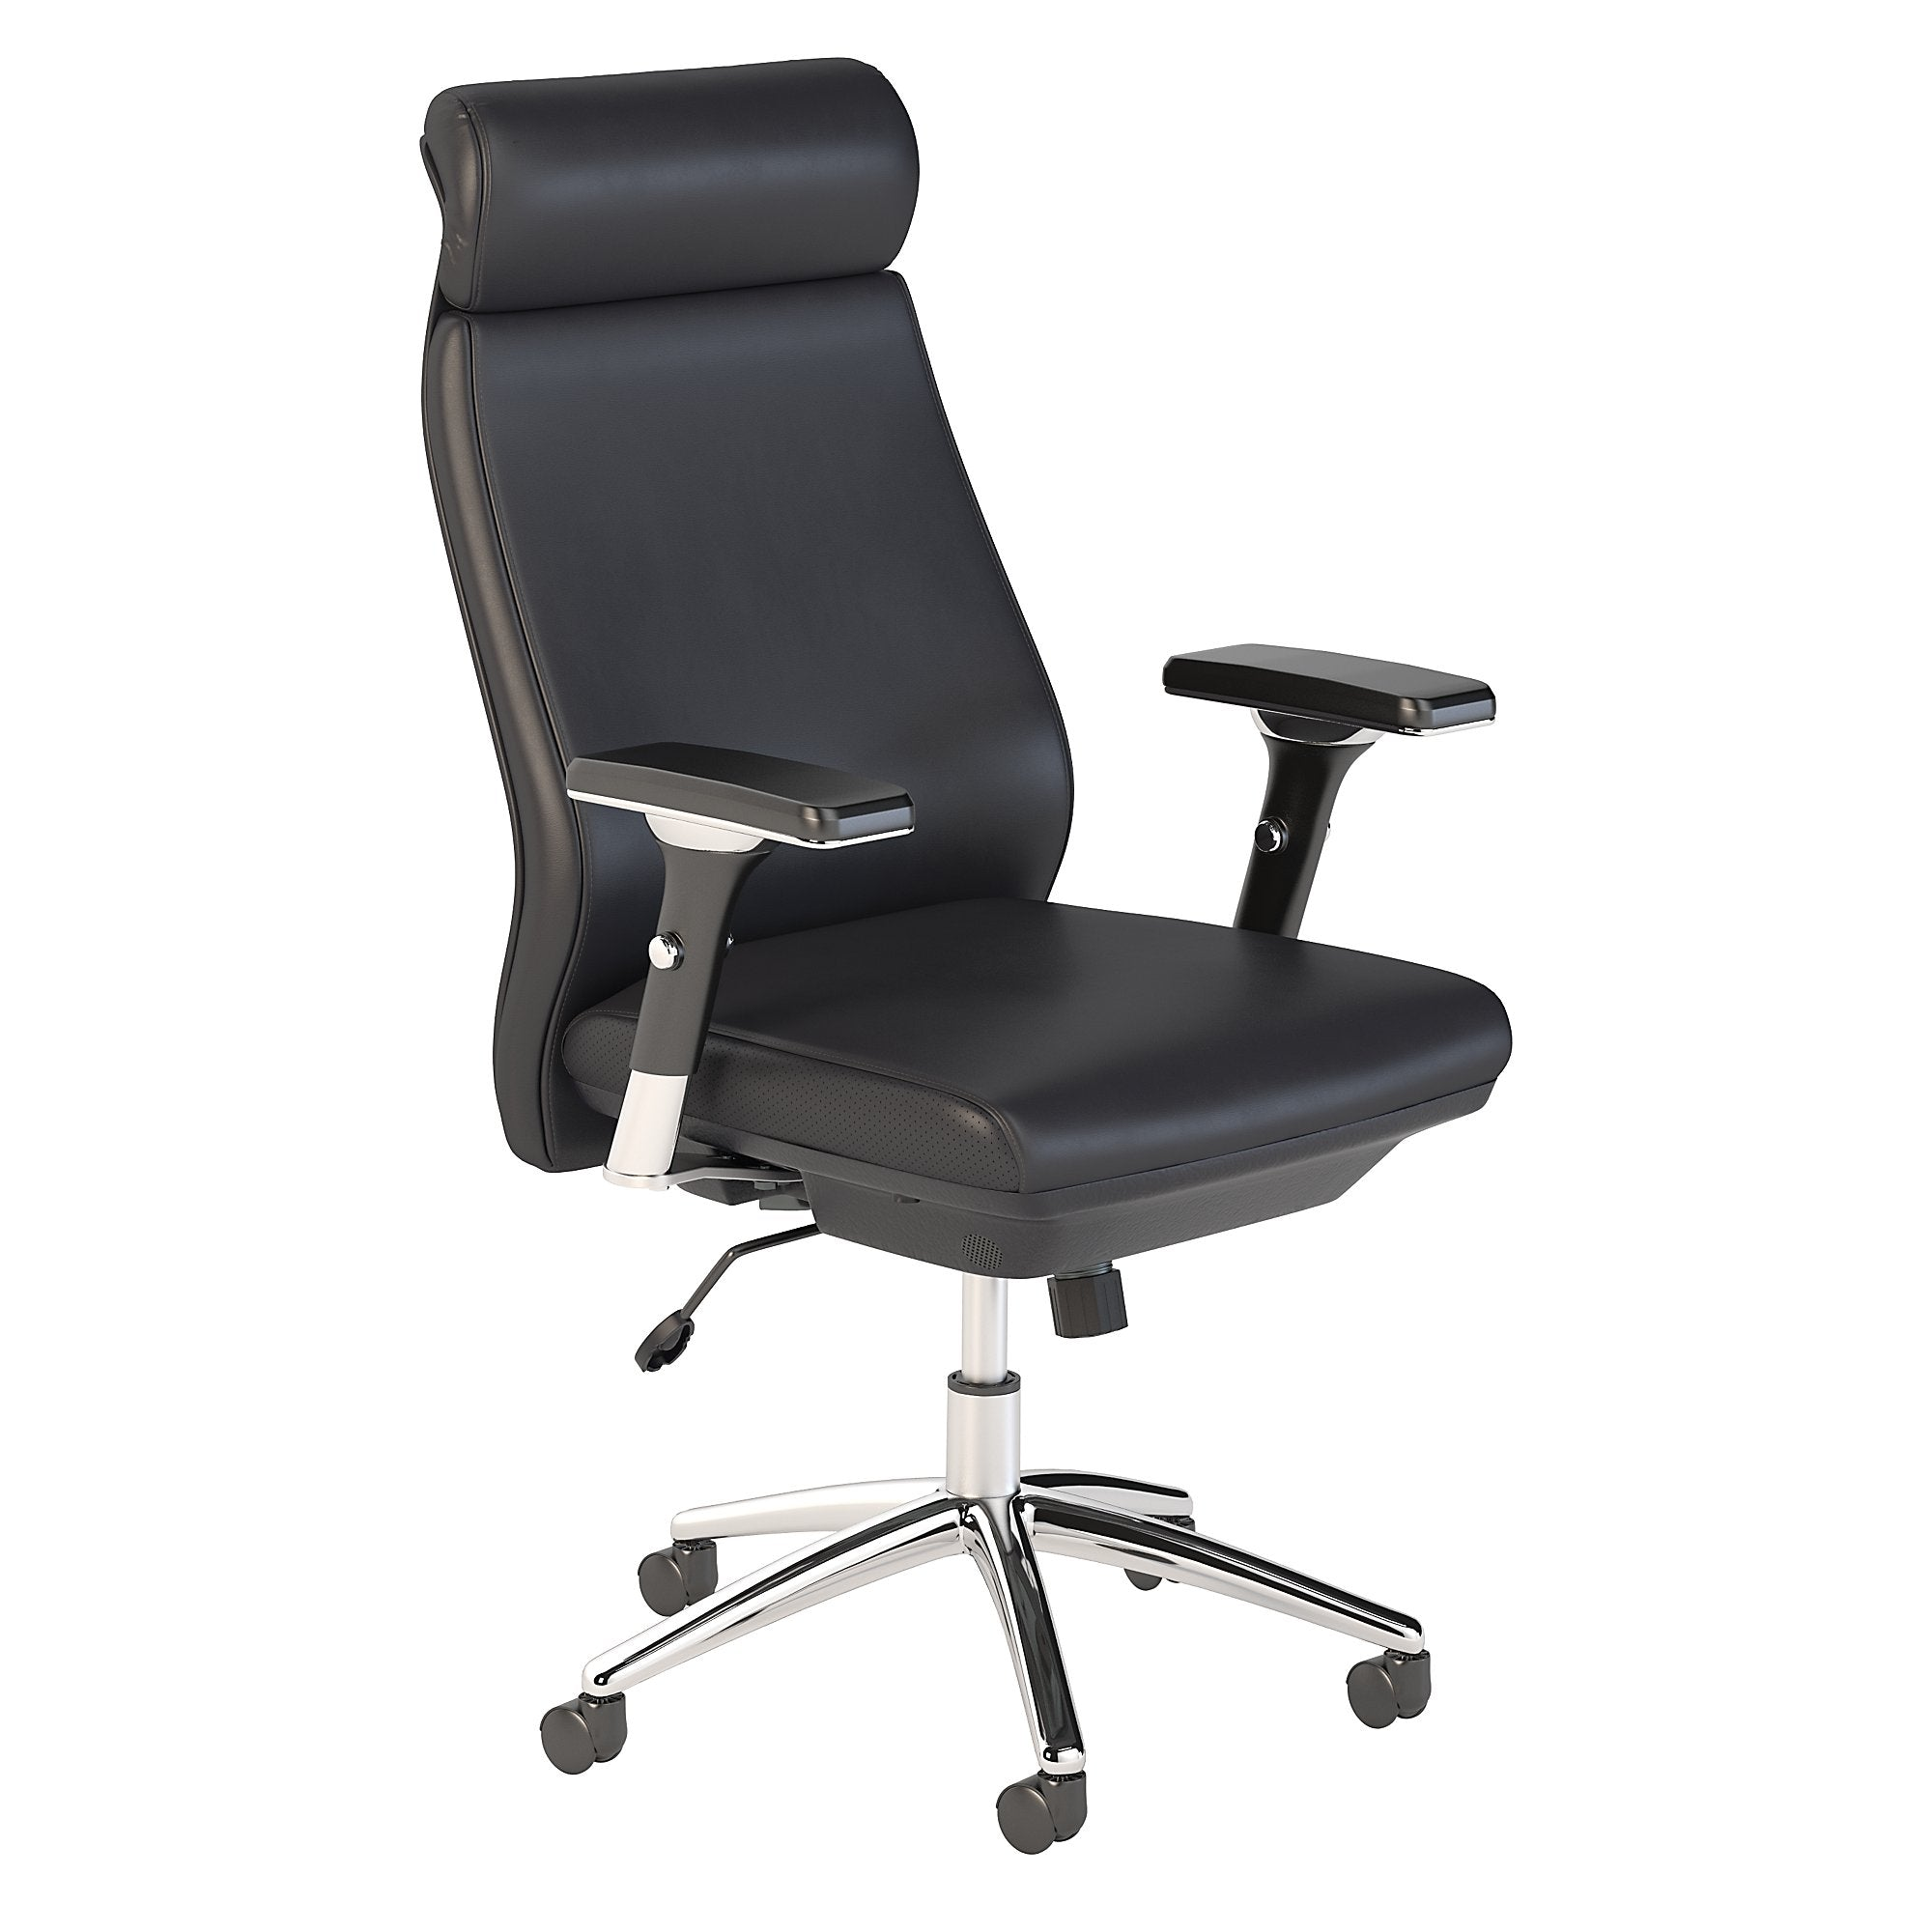 CH1601BLL-03 Bush Business Furniture Metropolis High Back Black Leather Executive Office Chair